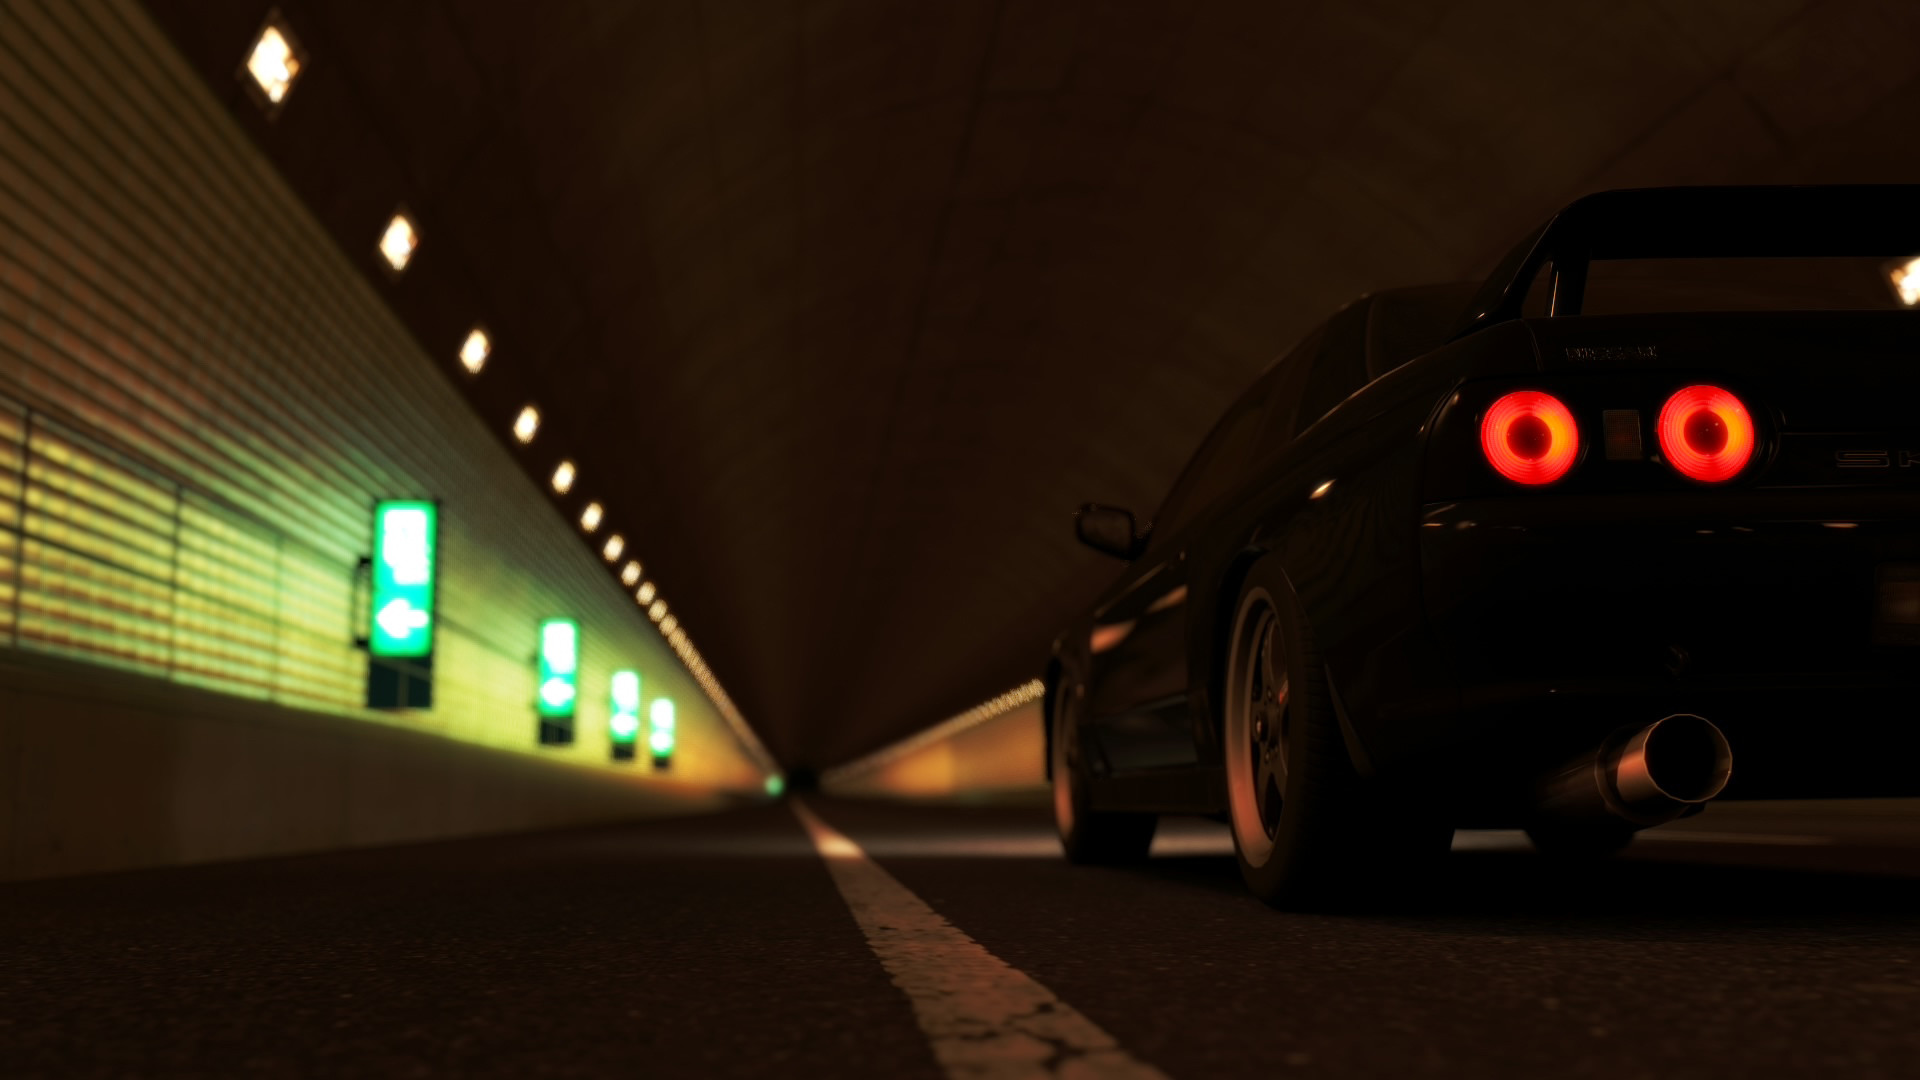 1920x1080 Skyline R32 Wallpaper 1 by ThunderBreak Skyline R32 Wallpaper 1 by  ThunderBreak